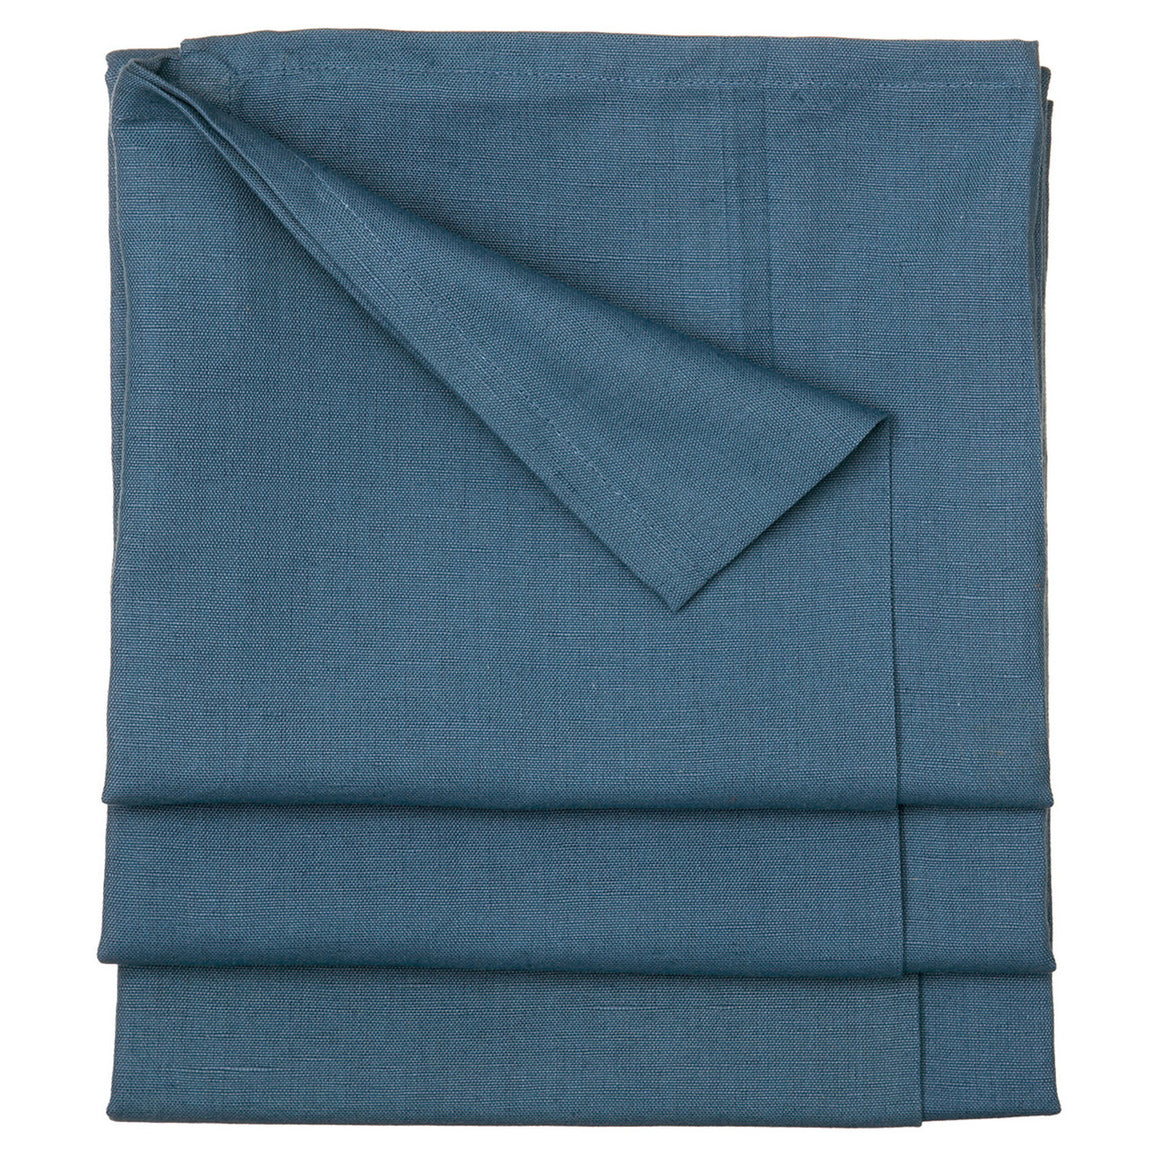 Solid Dyed Linen Cotton Union Tablecloth in Dark Petrol Blue